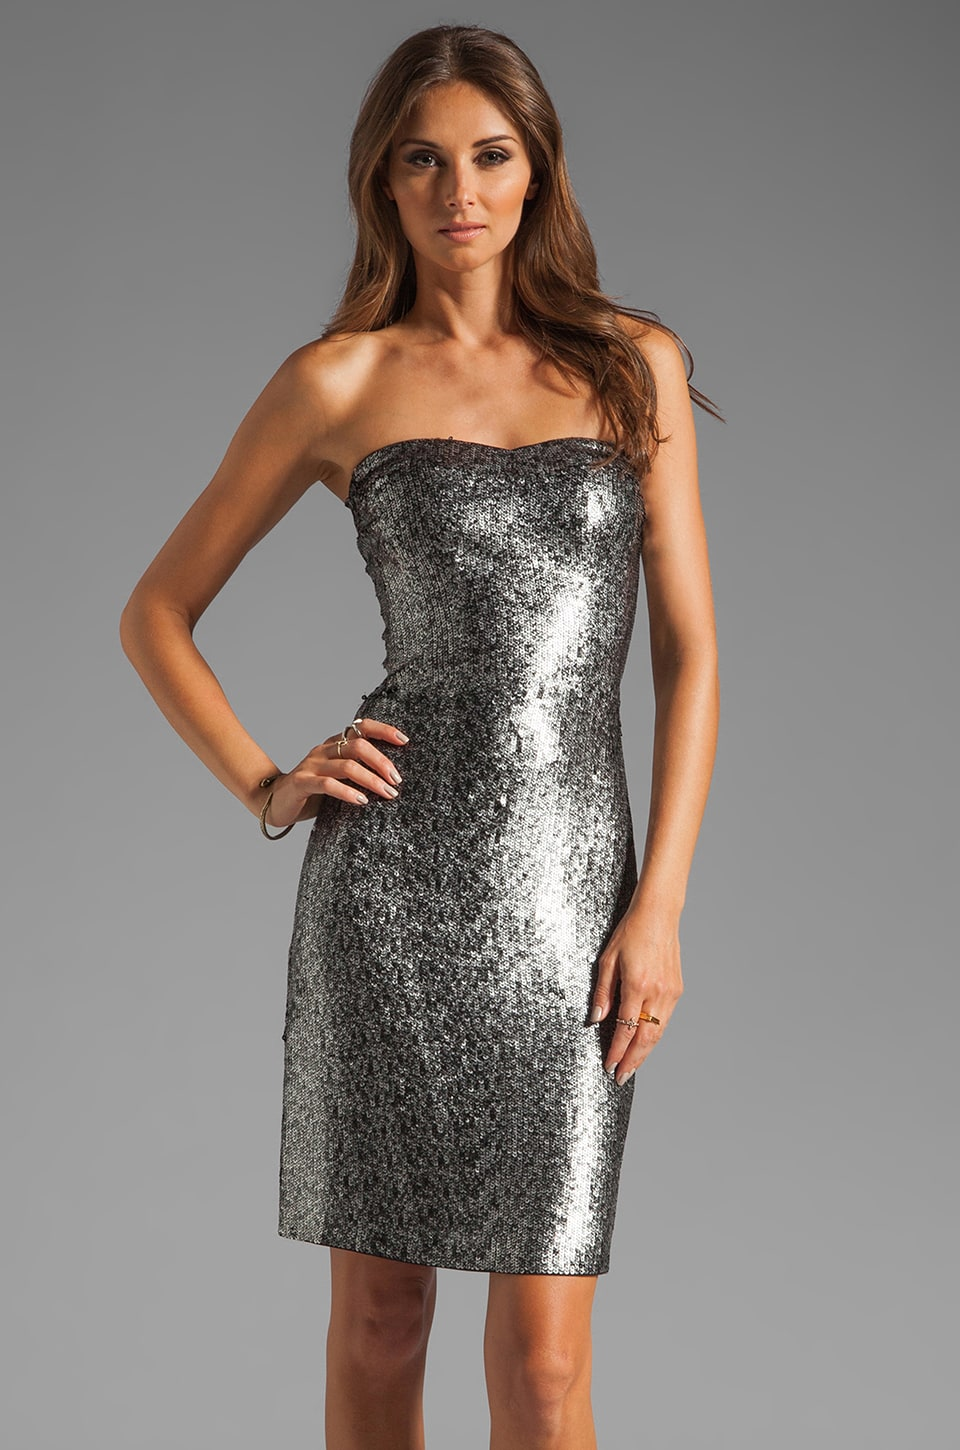 Rebecca Taylor Sequin Strapless Dress in Antique Silver